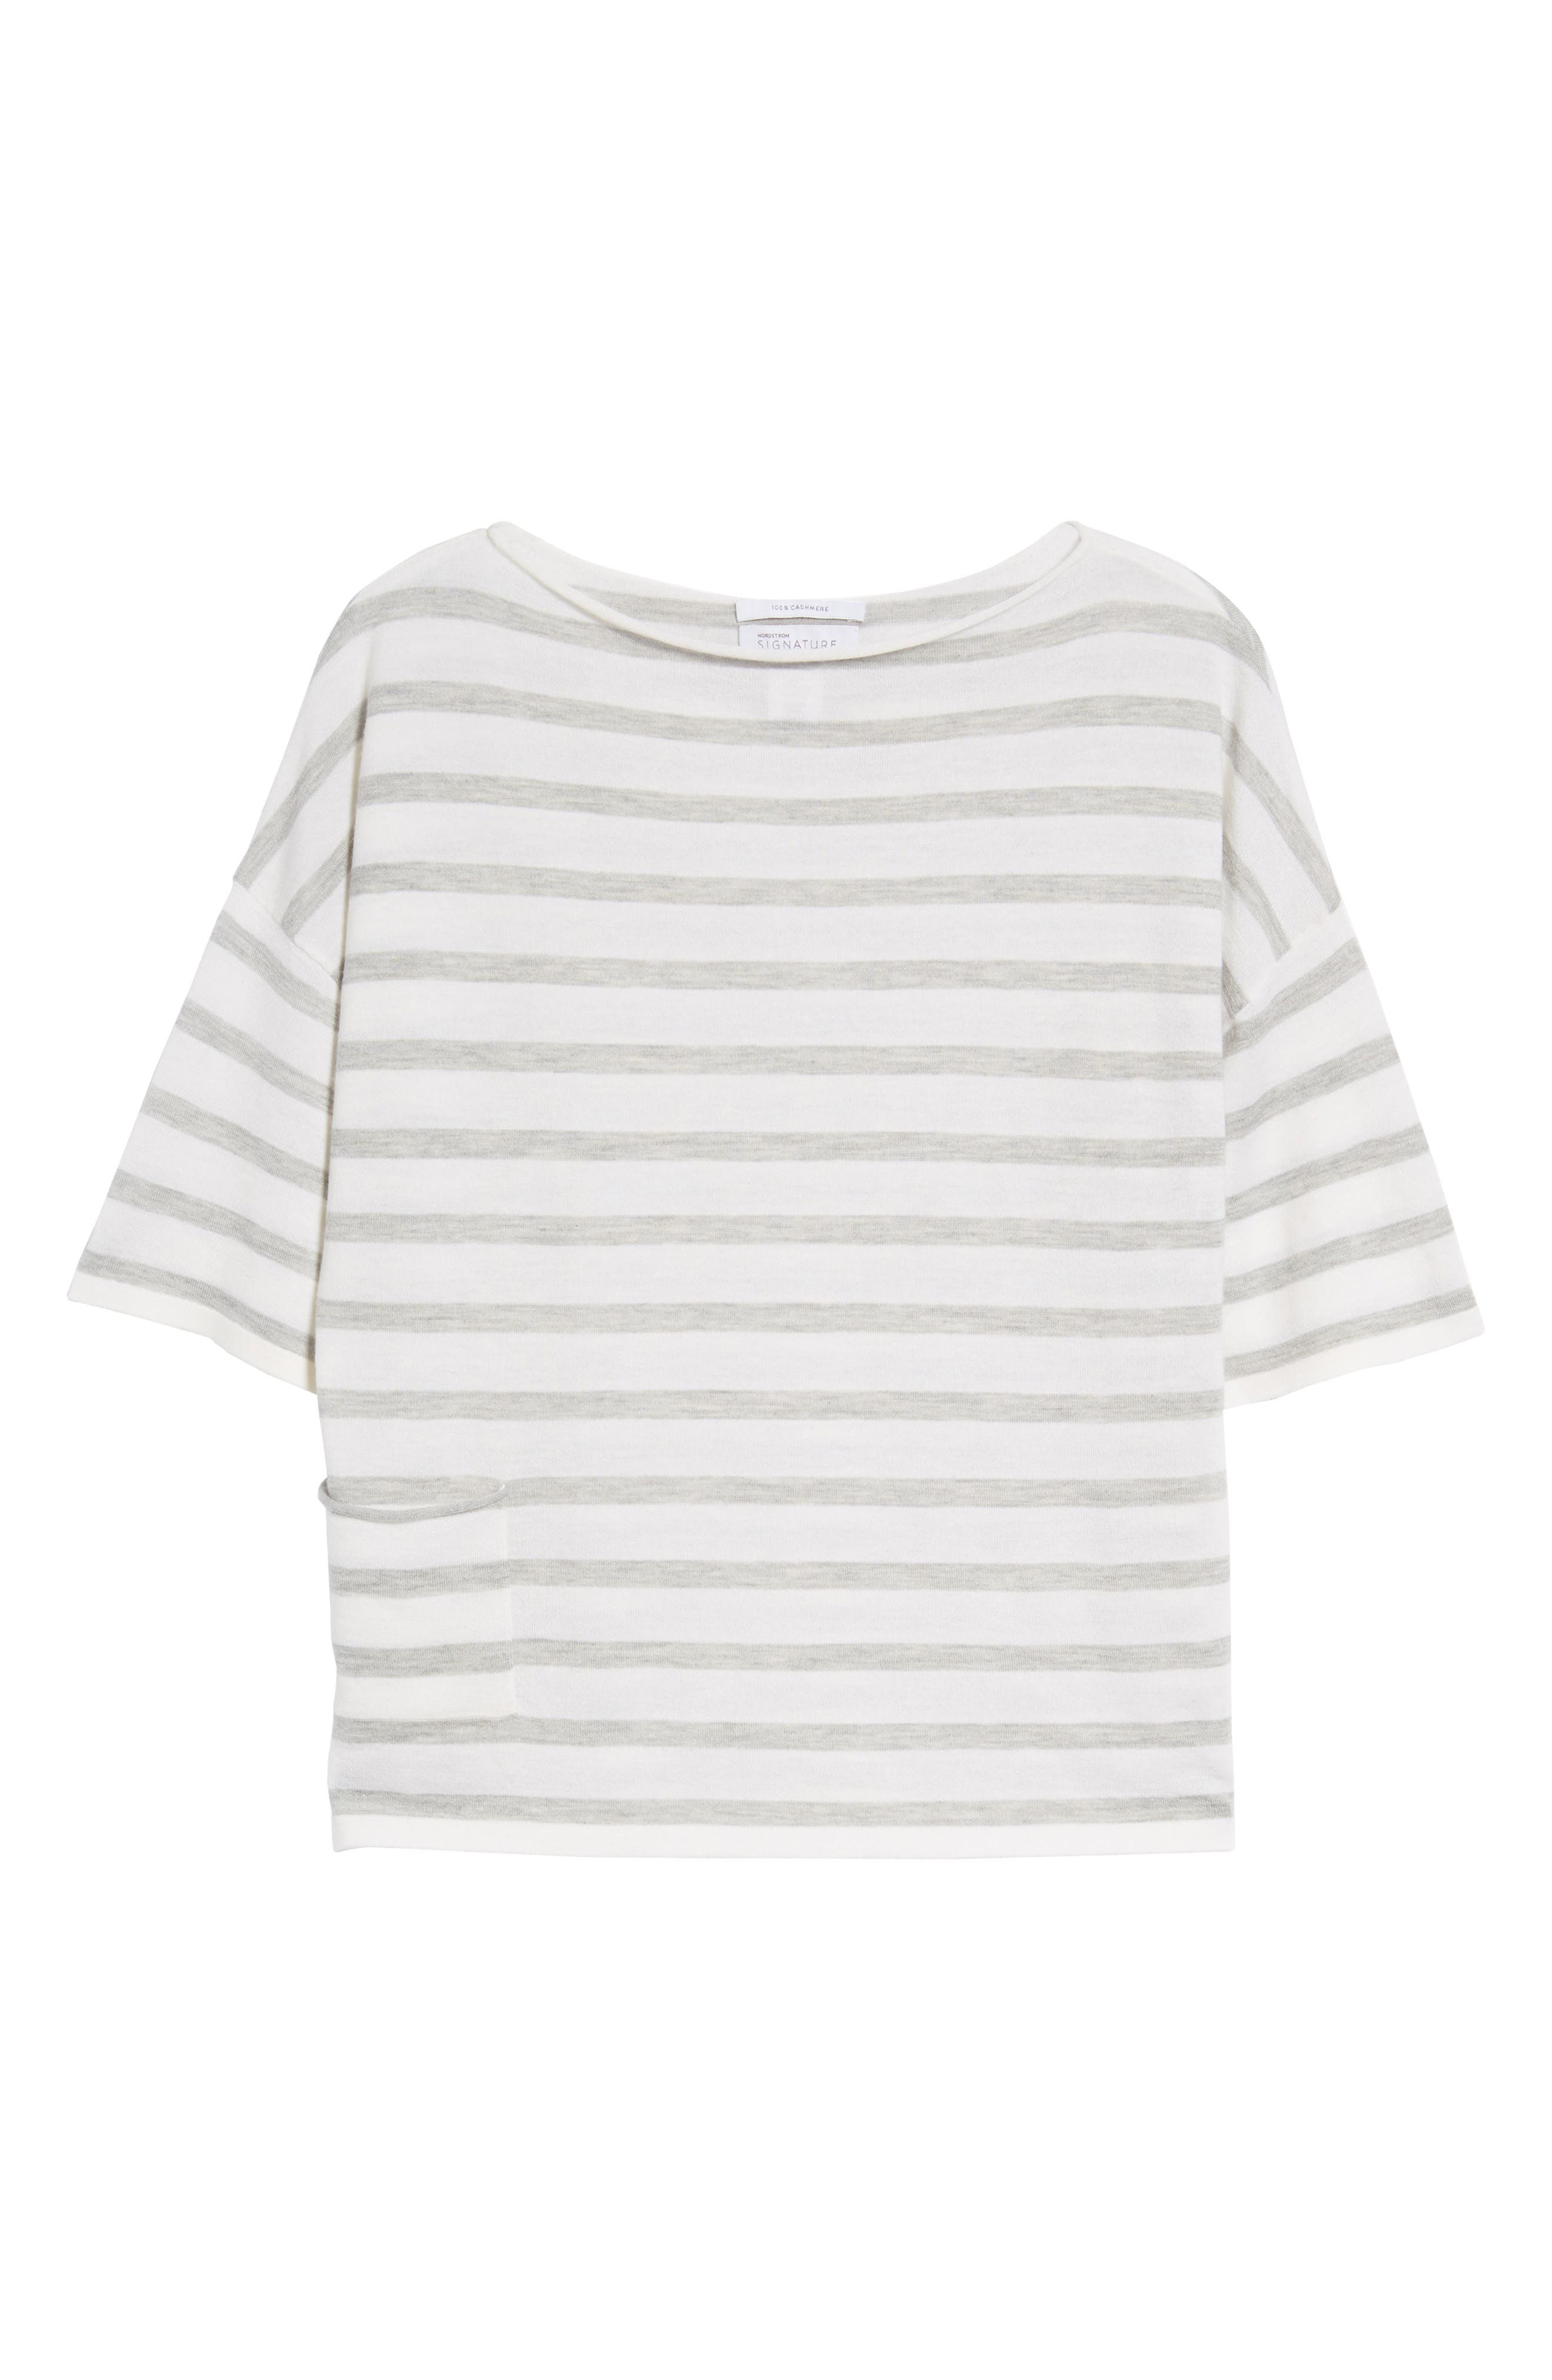 Stripe Cashmere Sweater,                             Alternate thumbnail 7, color,                             900